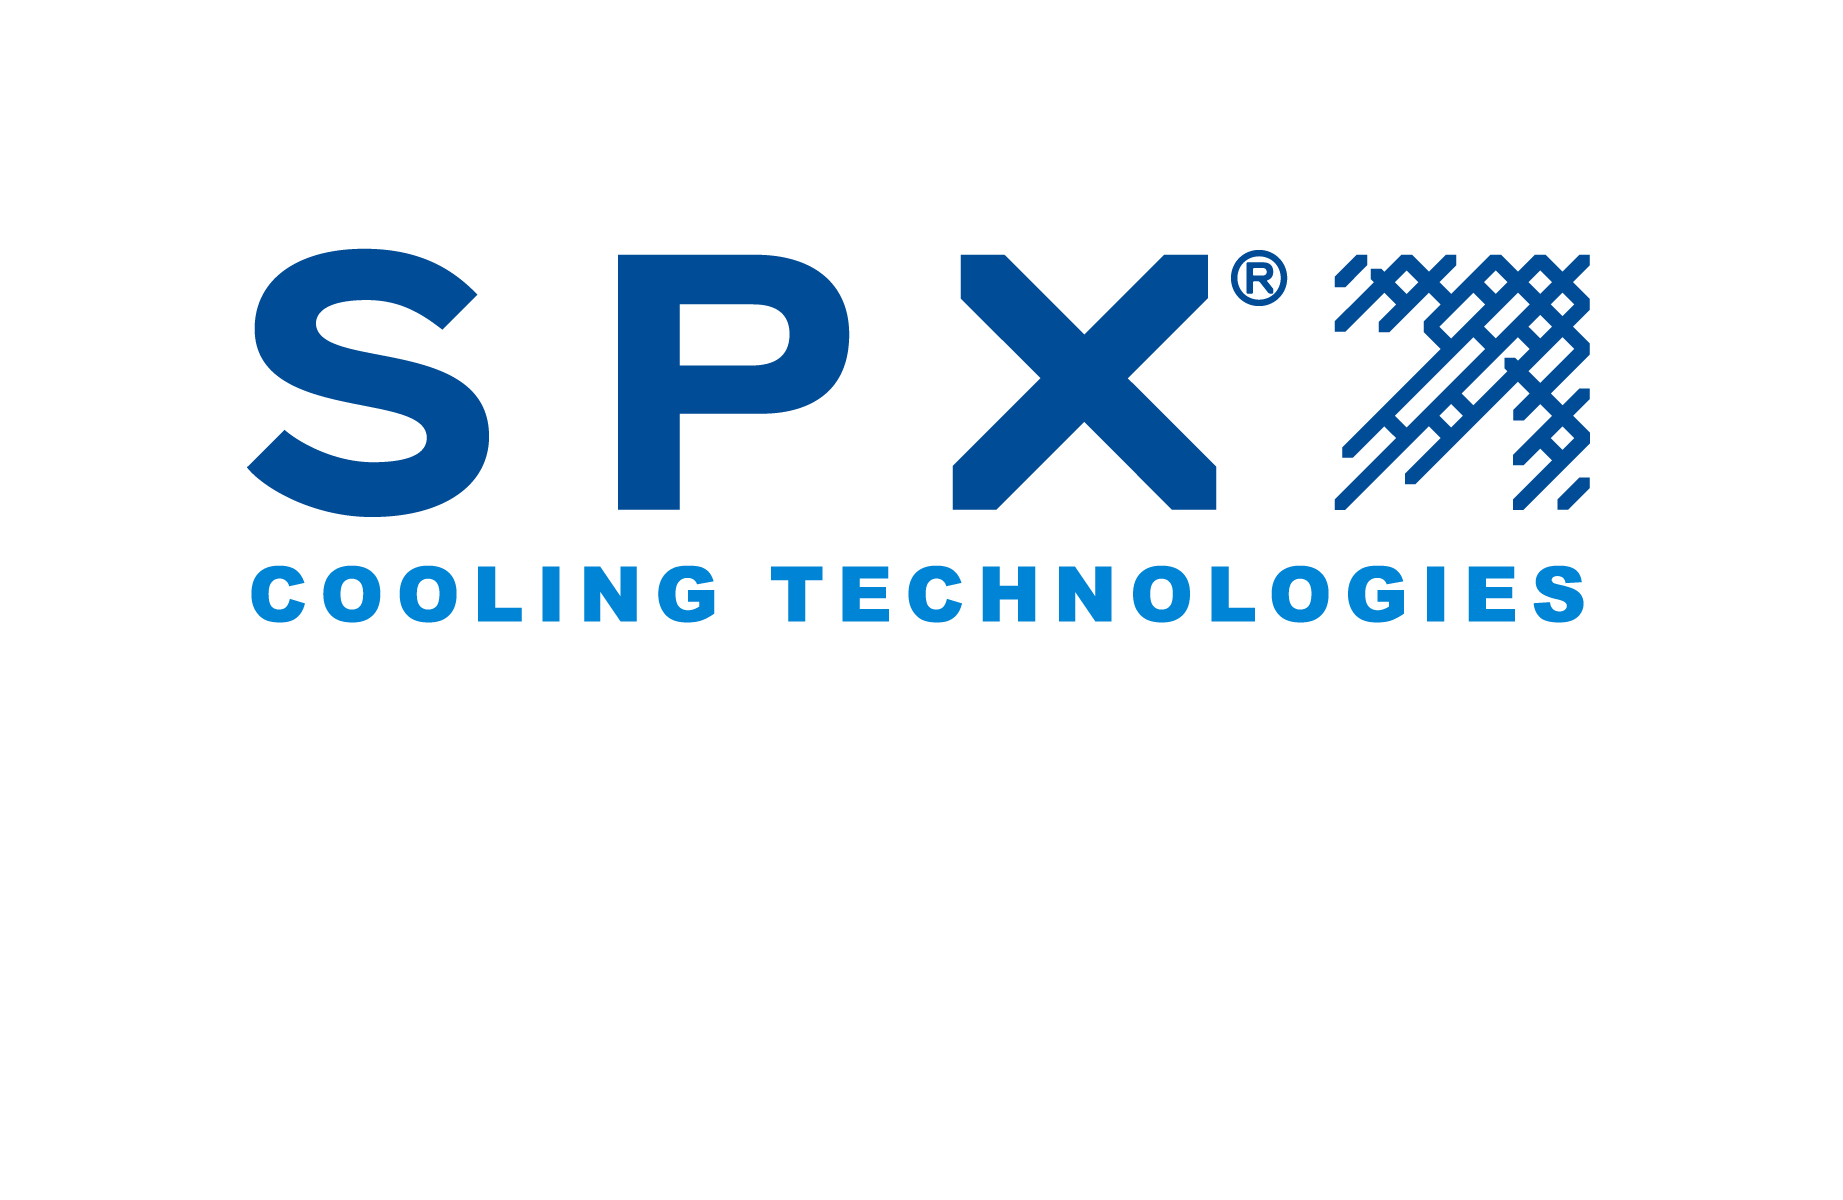 SPX Marketing Material | SPX Corporation in Charlotte, NC